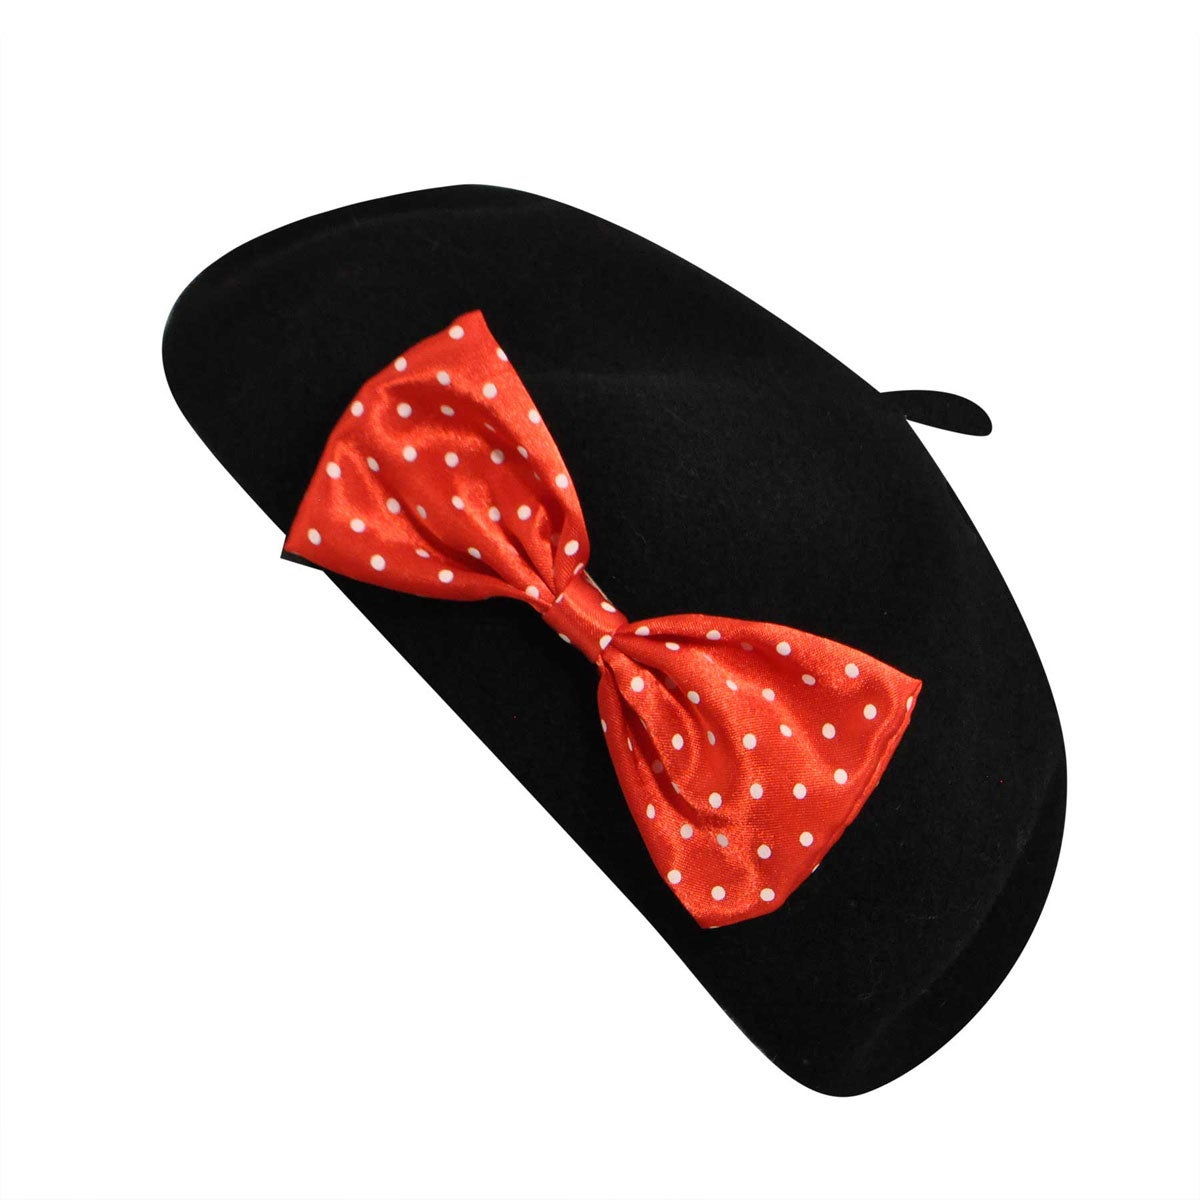 1950s Women's Hat Styles & History Kangol For Disney Female Disney Anglobasque Beret With Detachable Bows $58.00 AT vintagedancer.com